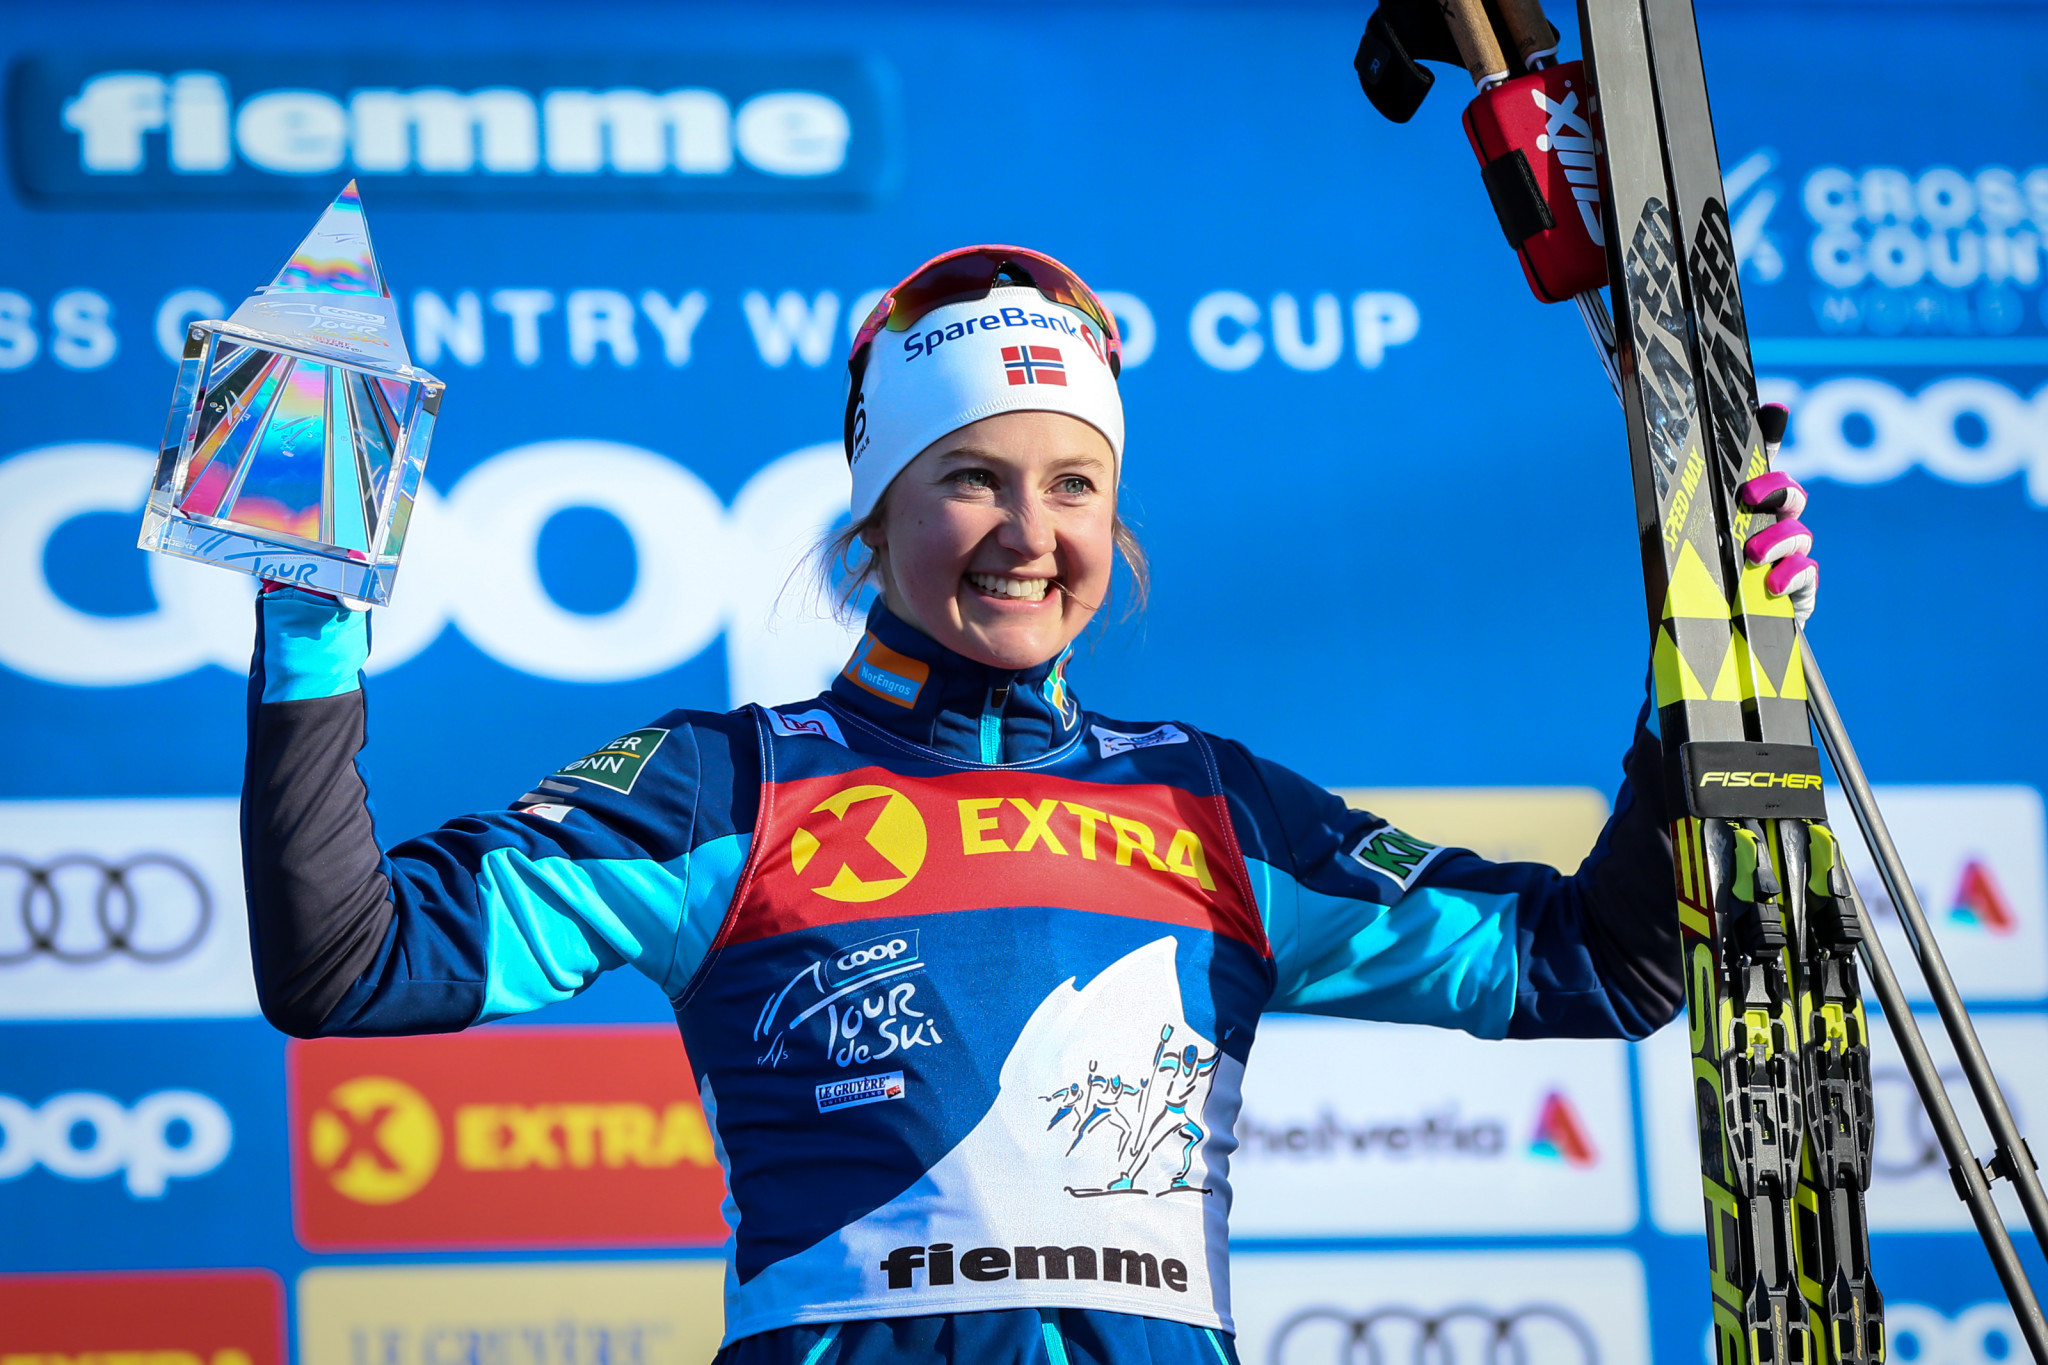 Norway complete Tour de Ski double as Østberg and Klaebo win again in Val Di Fiemme